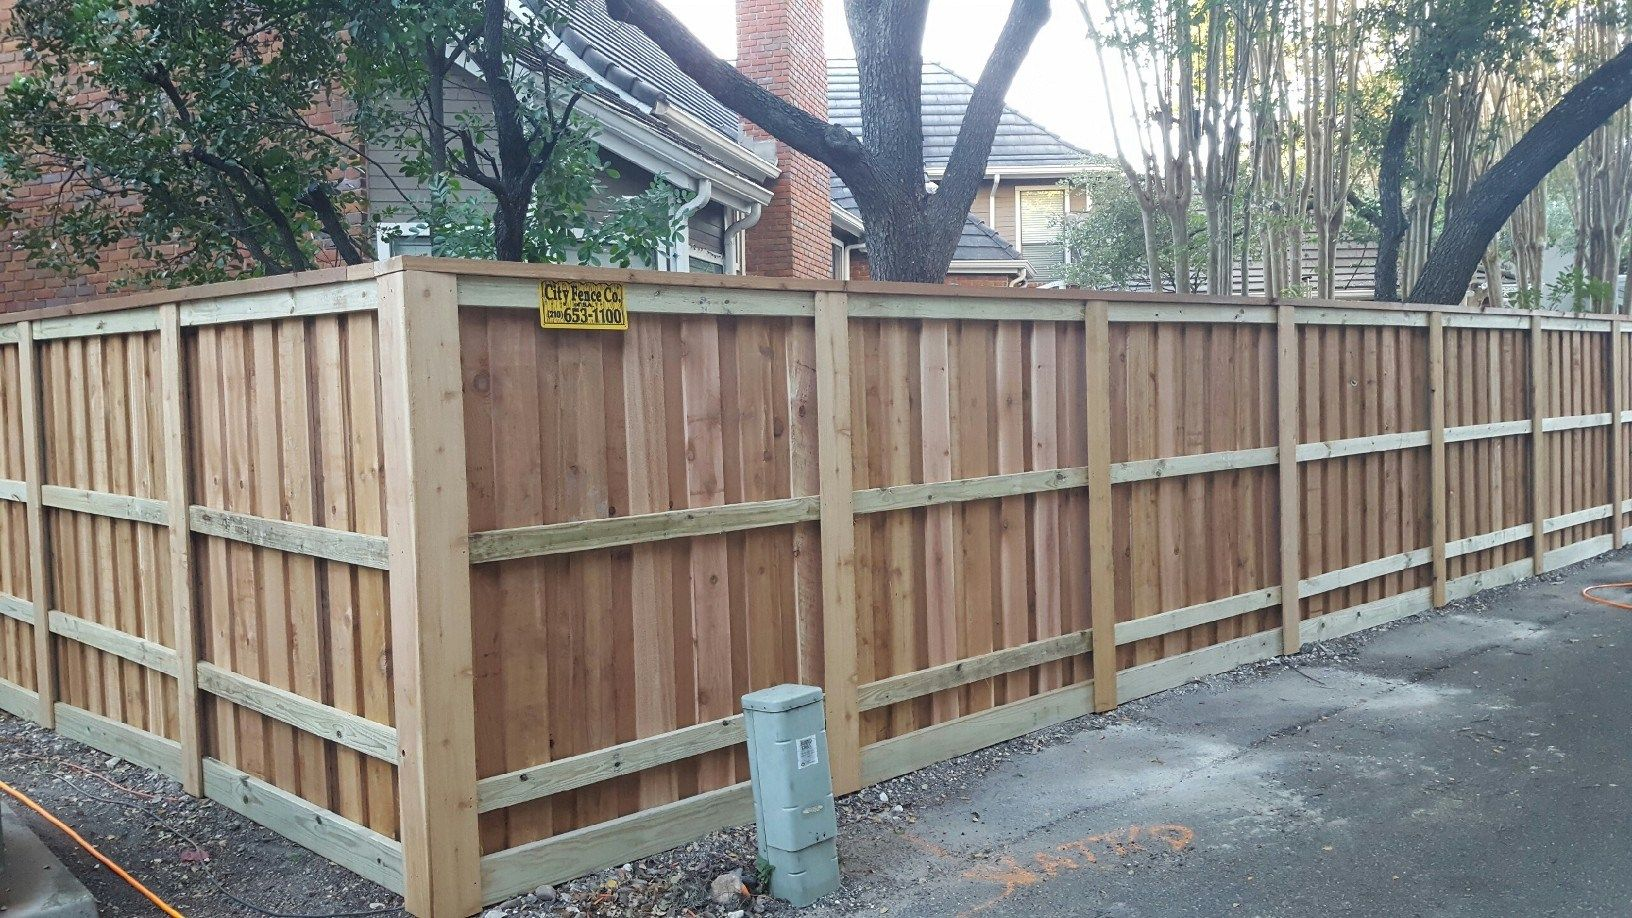 1x6x6 Cedar Privacy Fence Board On Board Style Flush Steel Postmaster Posts 2x8 Rough Cedar Cap Resident Fence San Antonio San